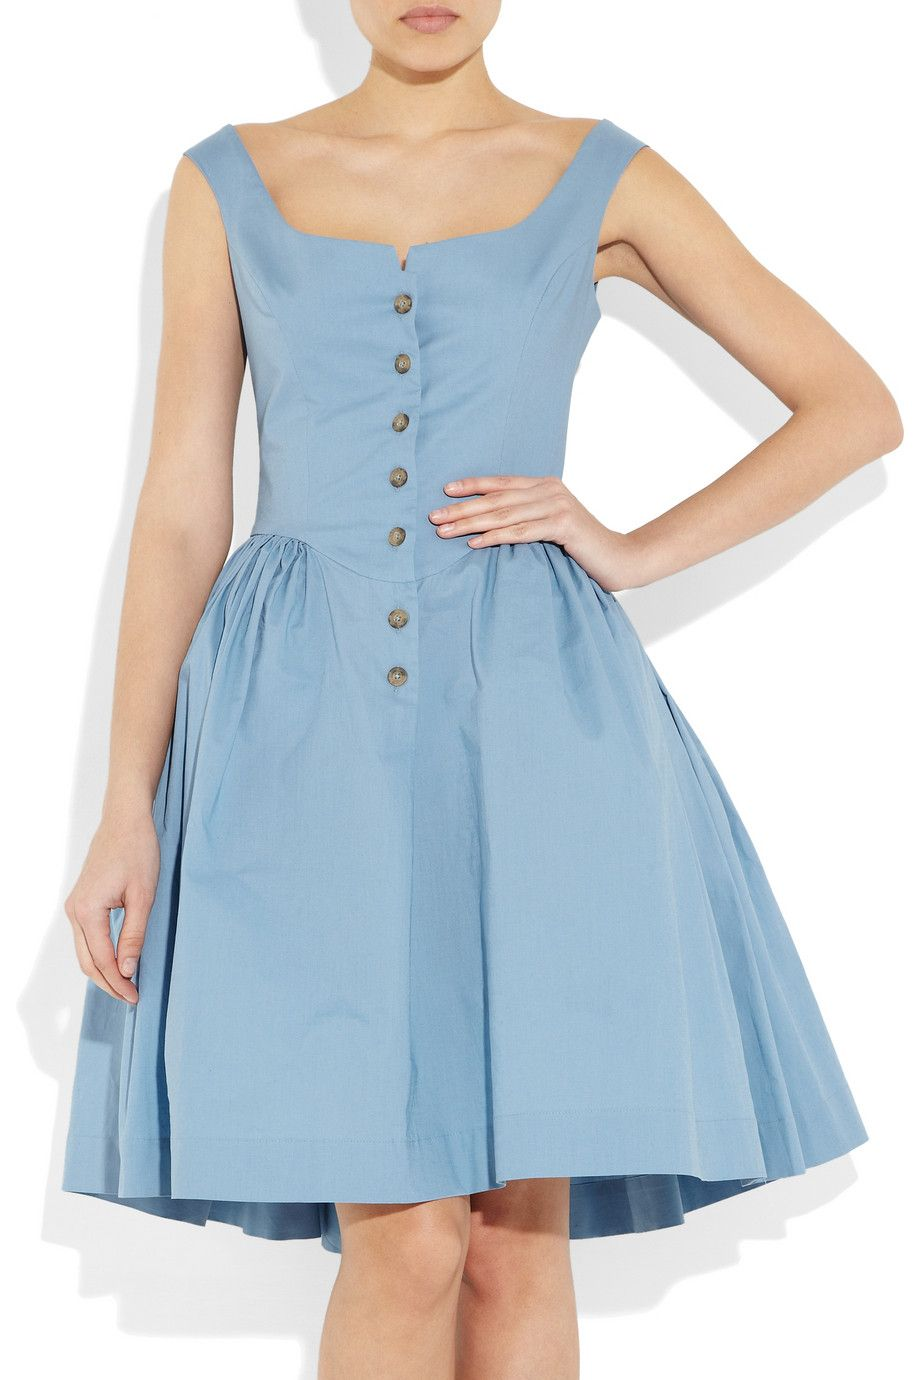 b50a806f1ebde Vivienne Westwood Anglomania is adored for its striking, beautifully cut  designs, and this sky-blue cotton dress is the perfect example.